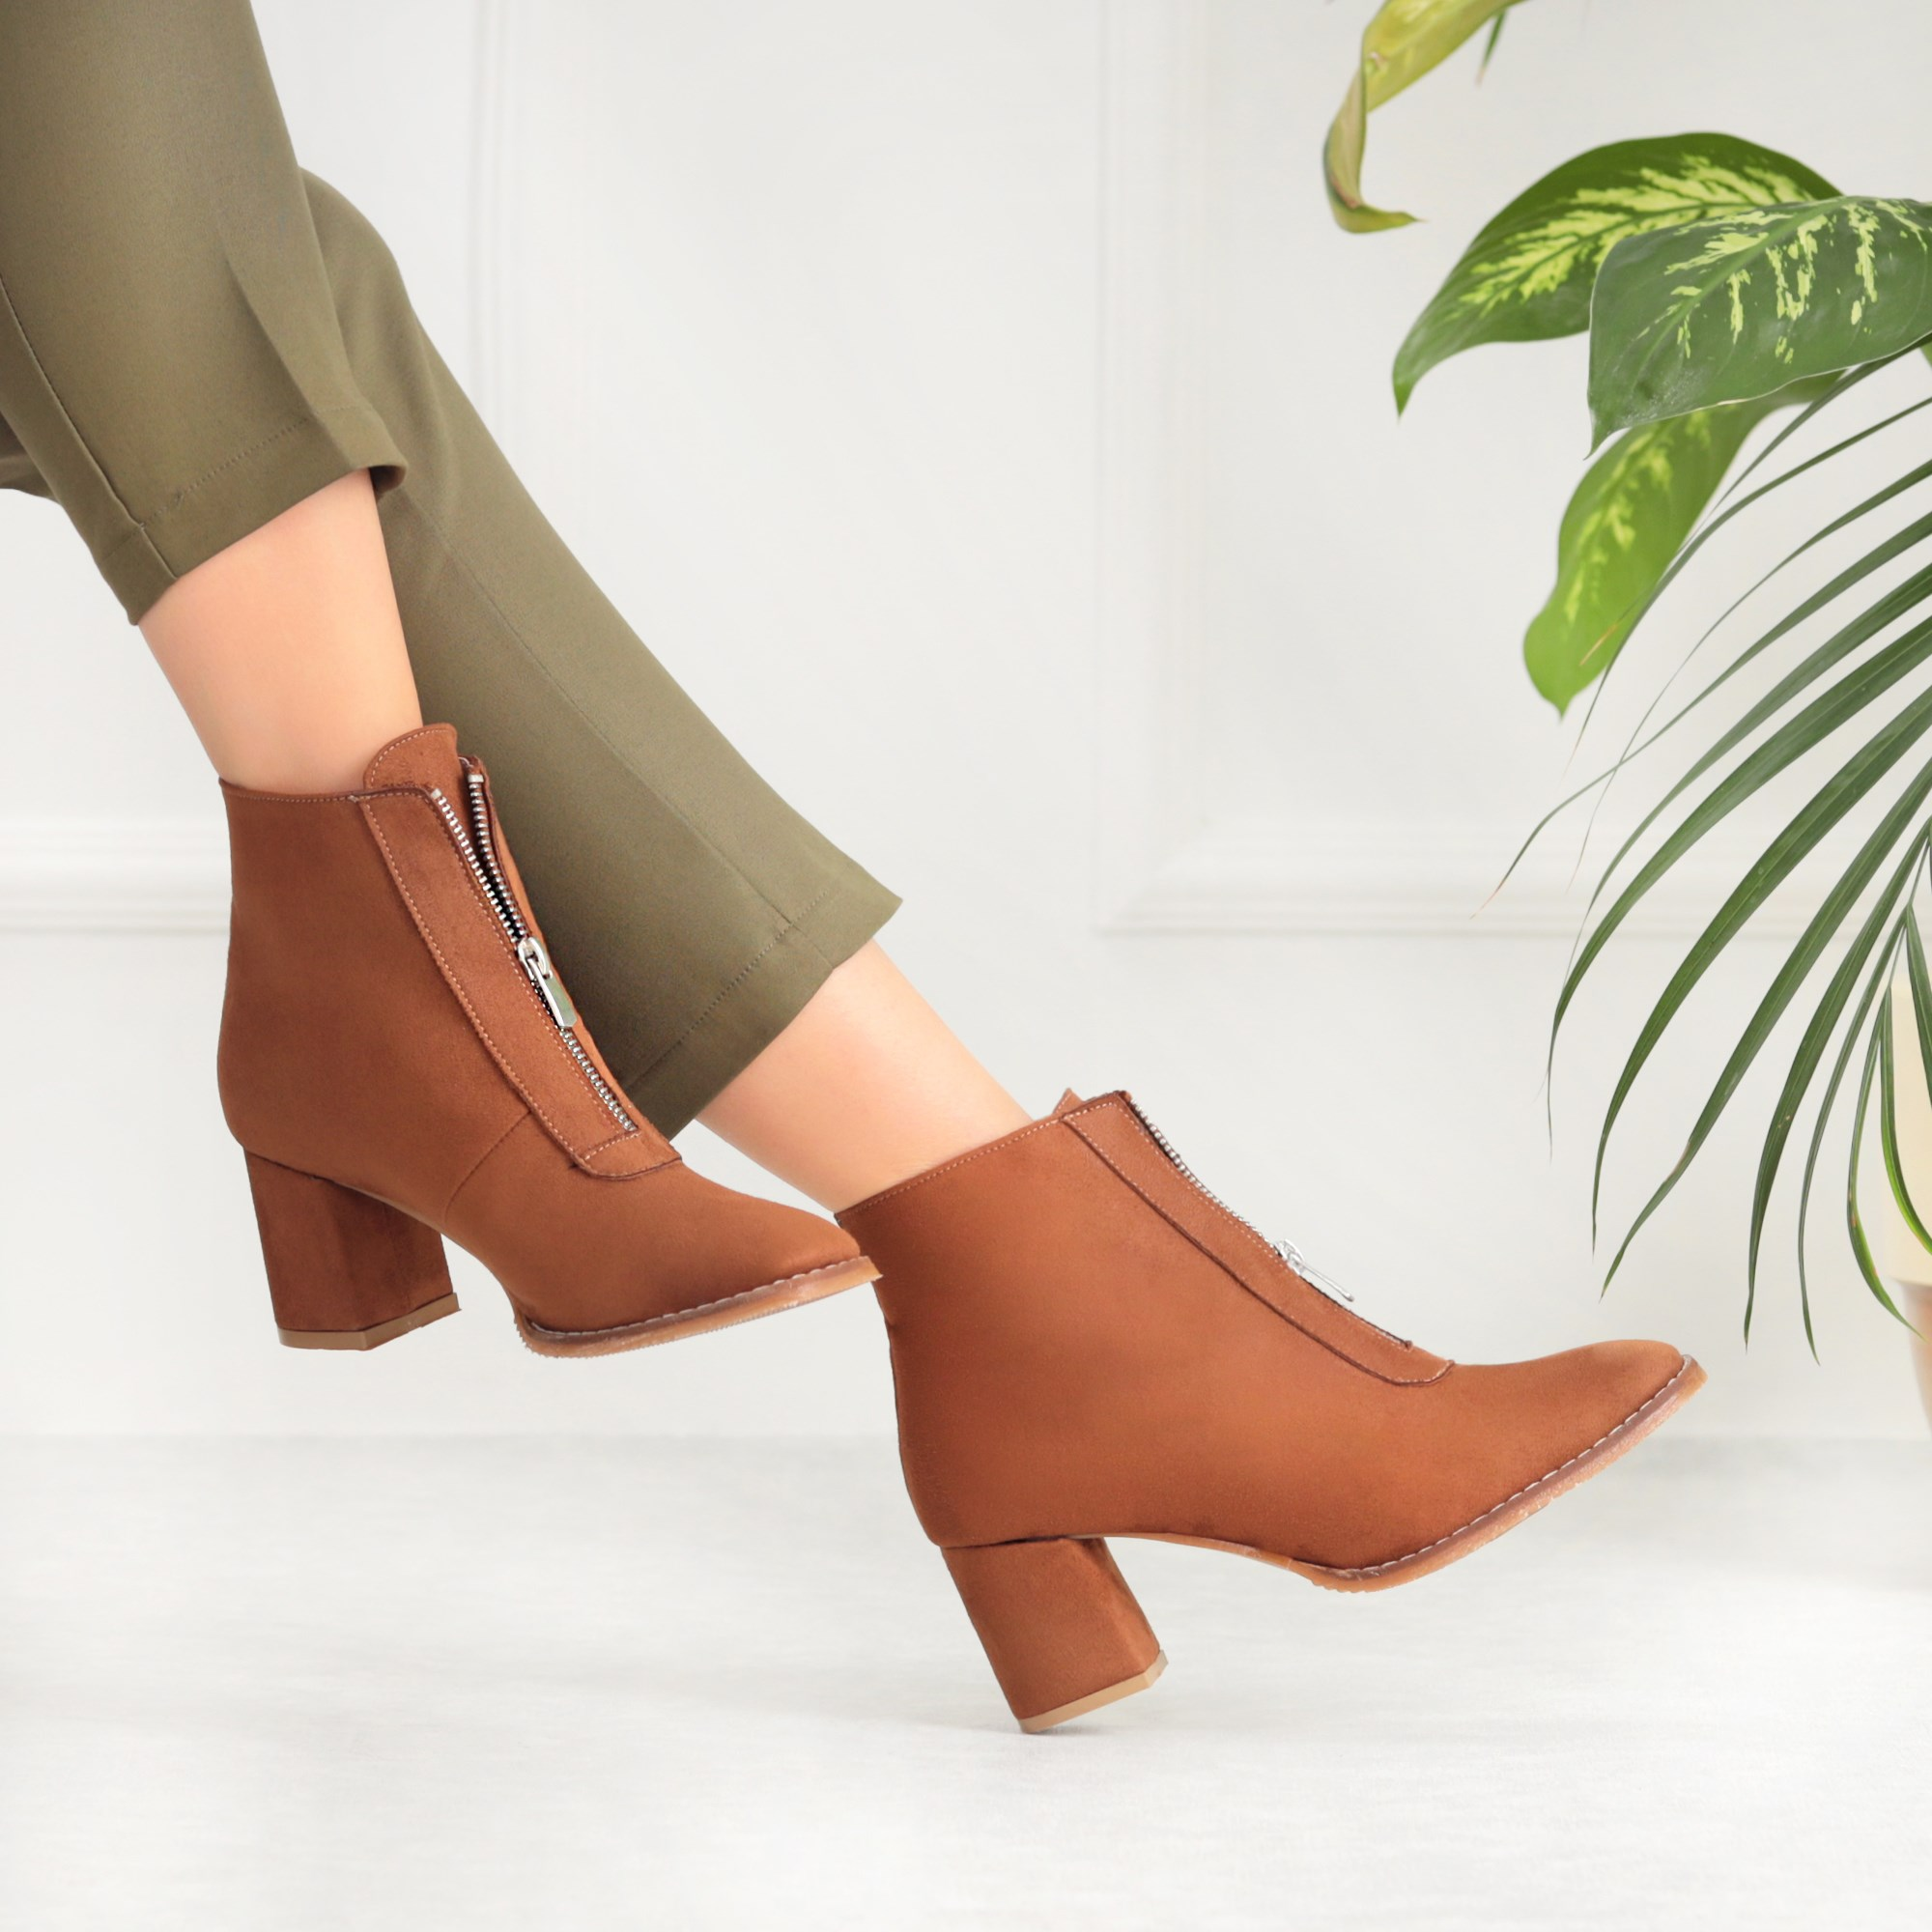 Vitnoye Suede Tan Color Boots Short Thick Heels